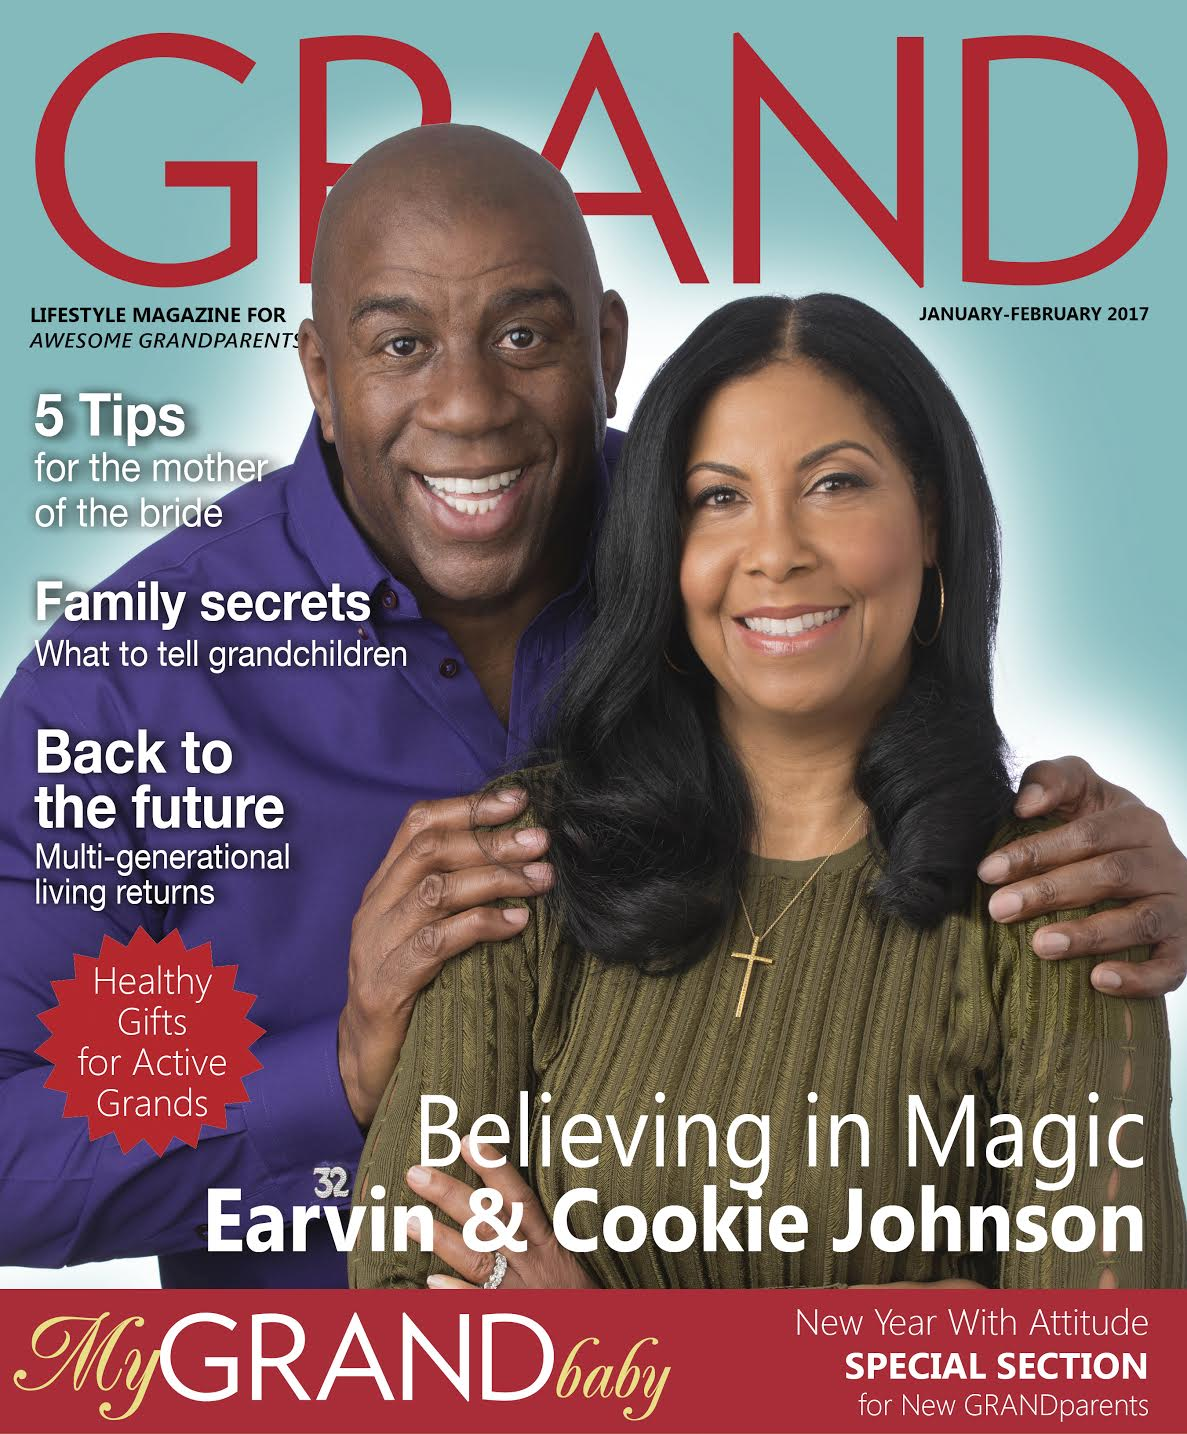 Jan/Feb 2017 GRAND Magazine cover